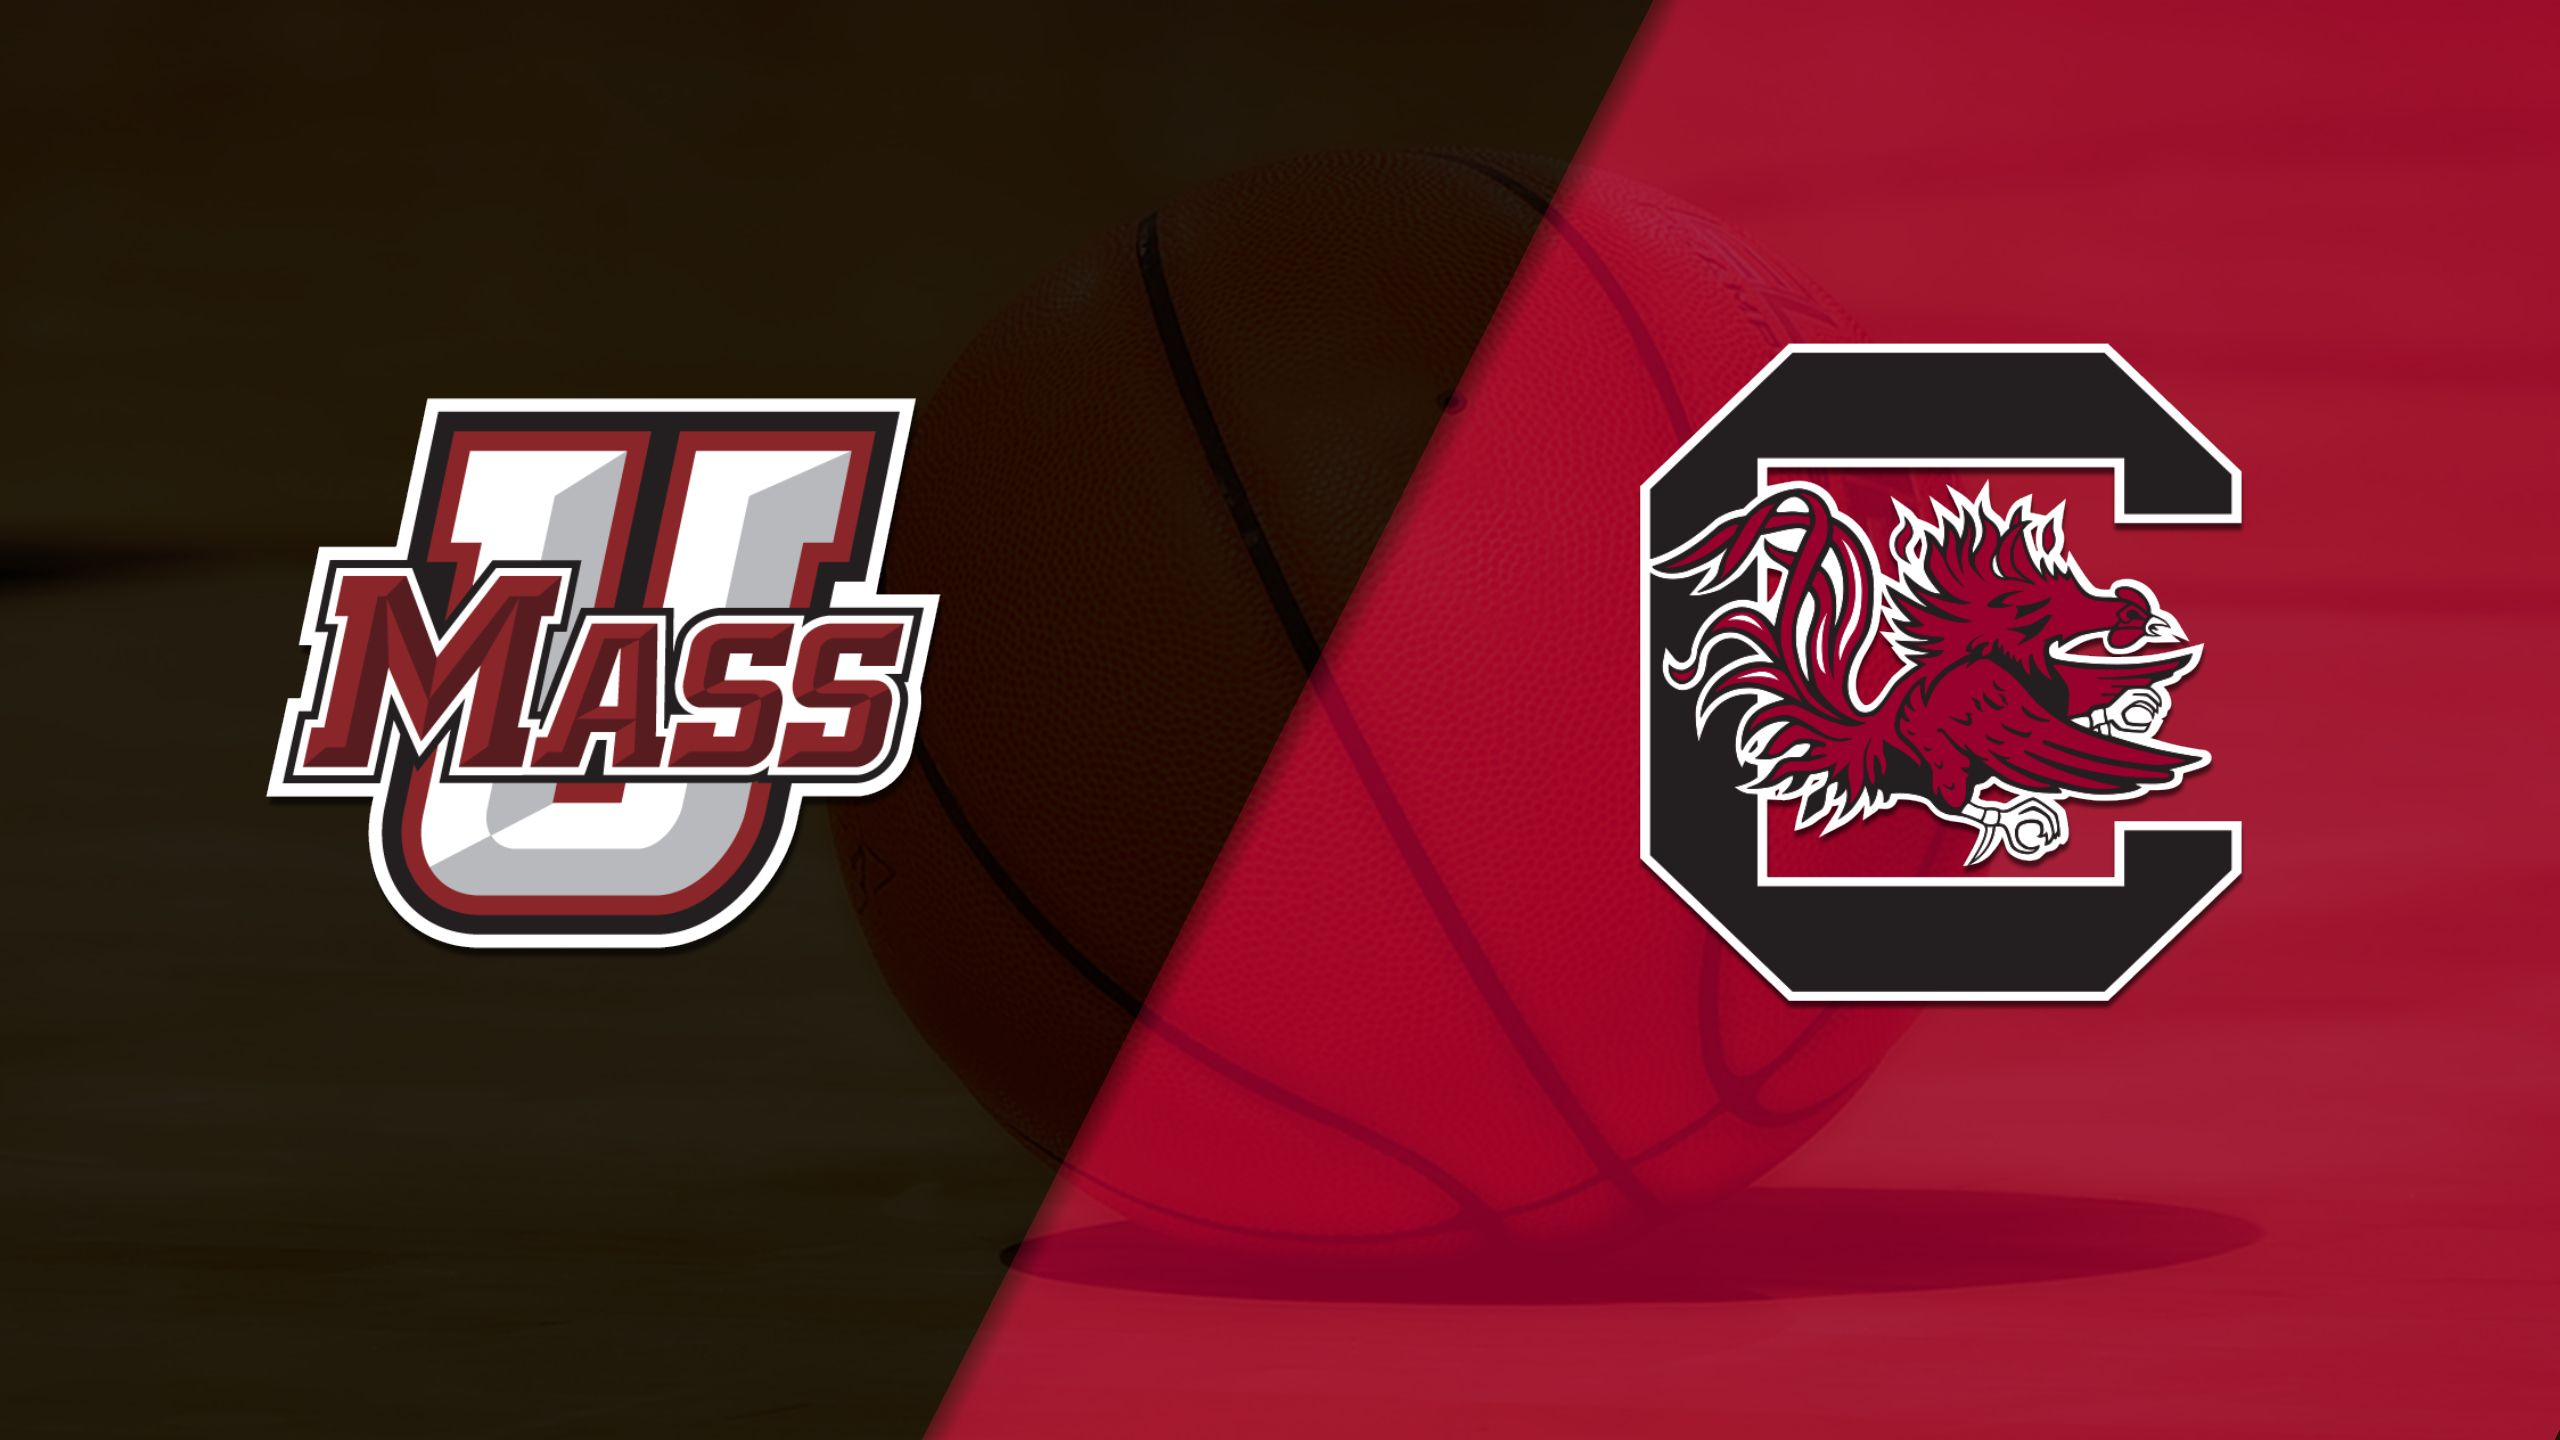 UMass vs. South Carolina (M Basketball)